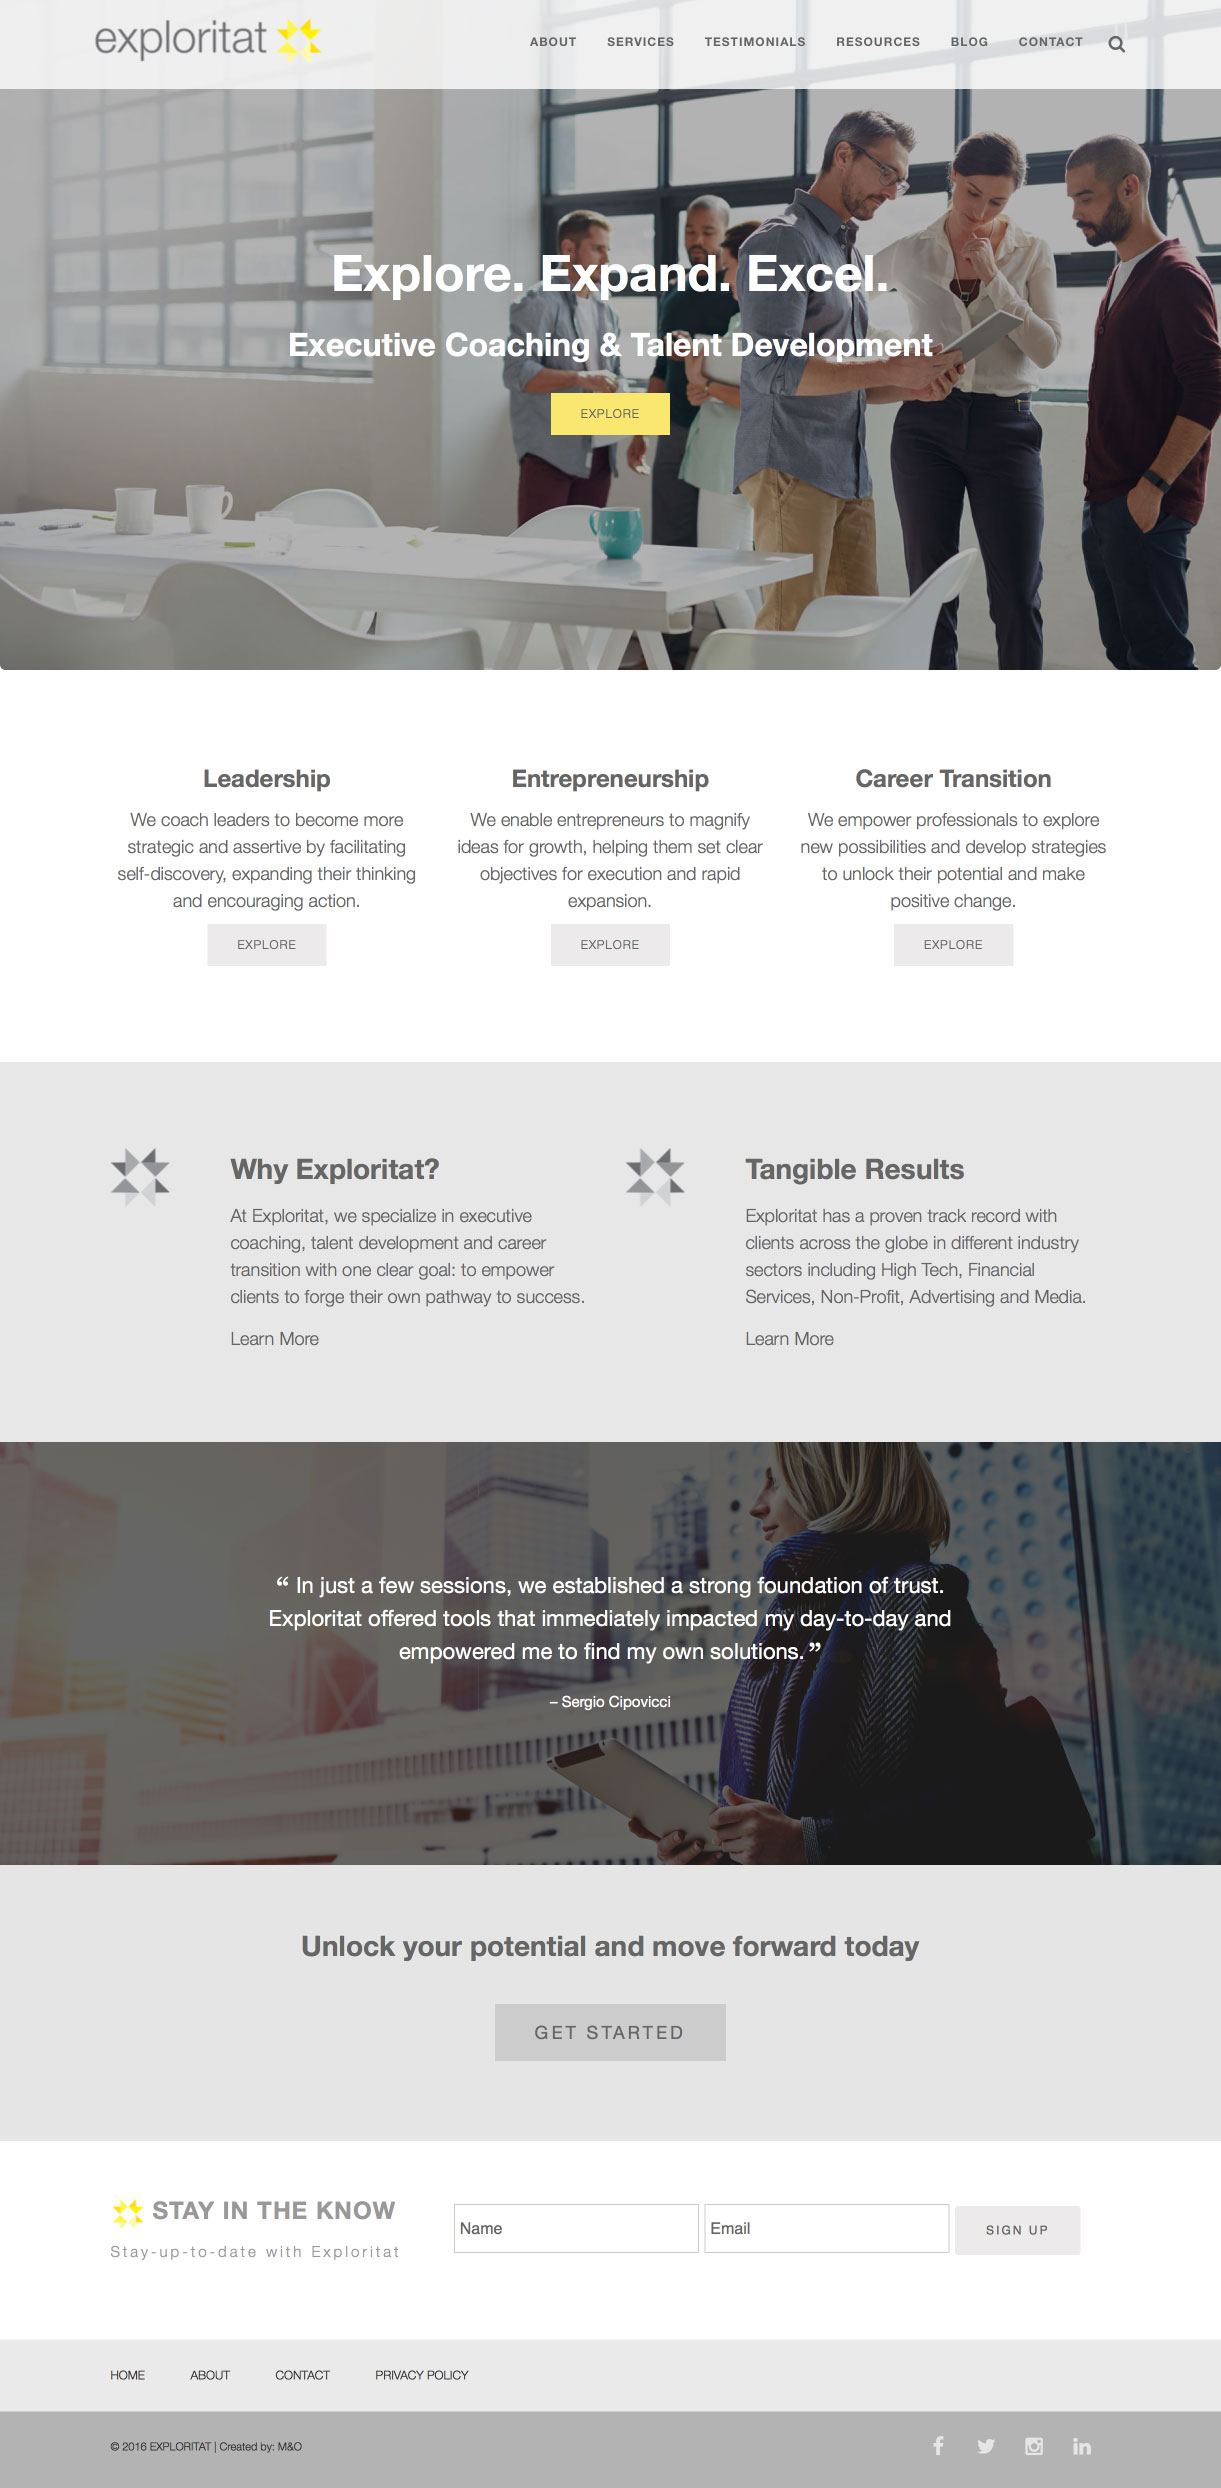 Exploritat web design by M&O